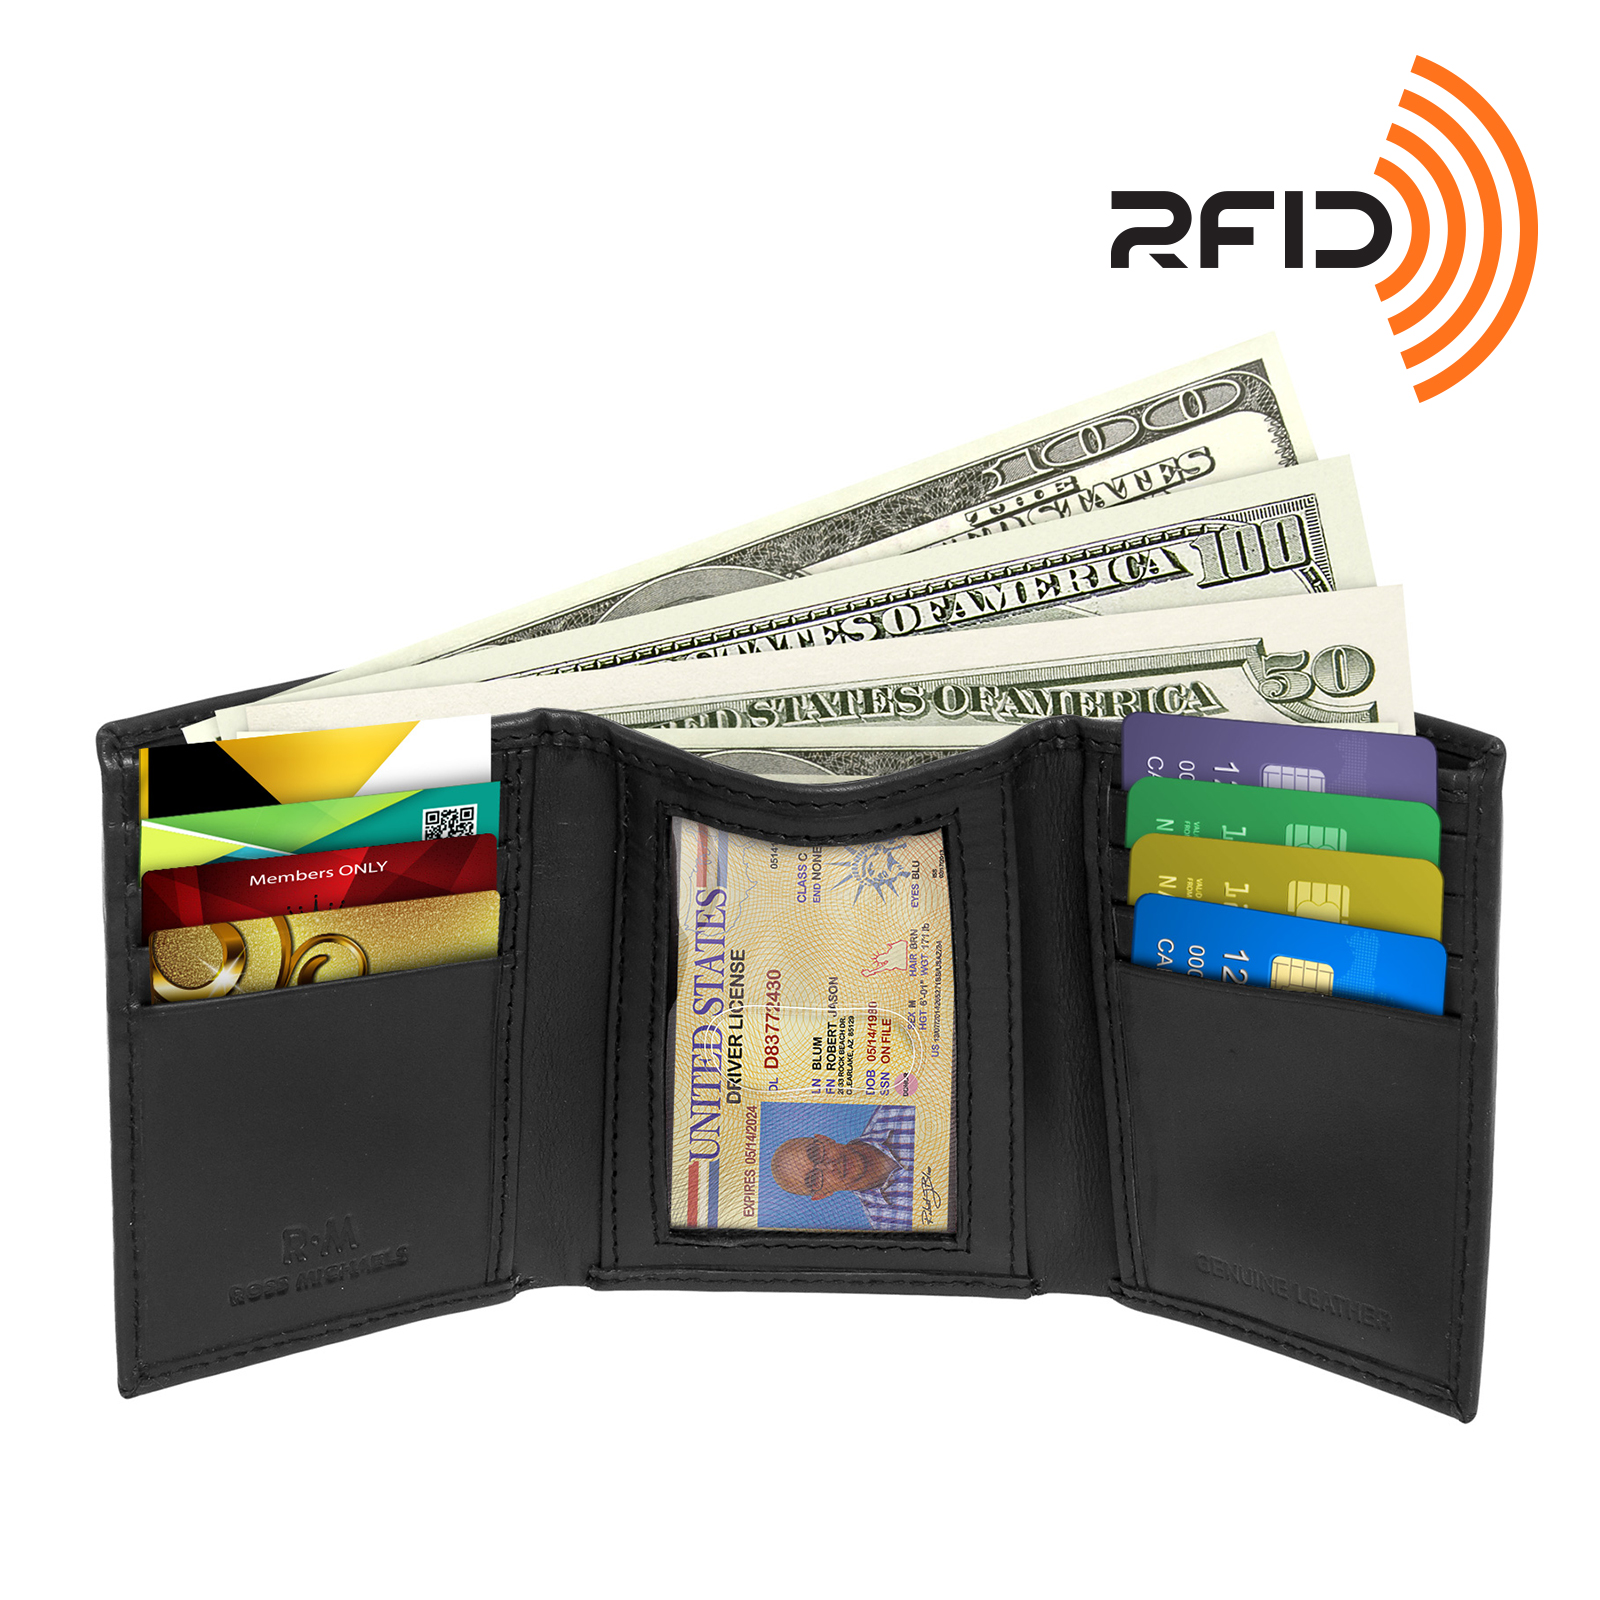 NEW RFID Blocking Genuine Leather Trifold Wallet by Ross Michaels for Men